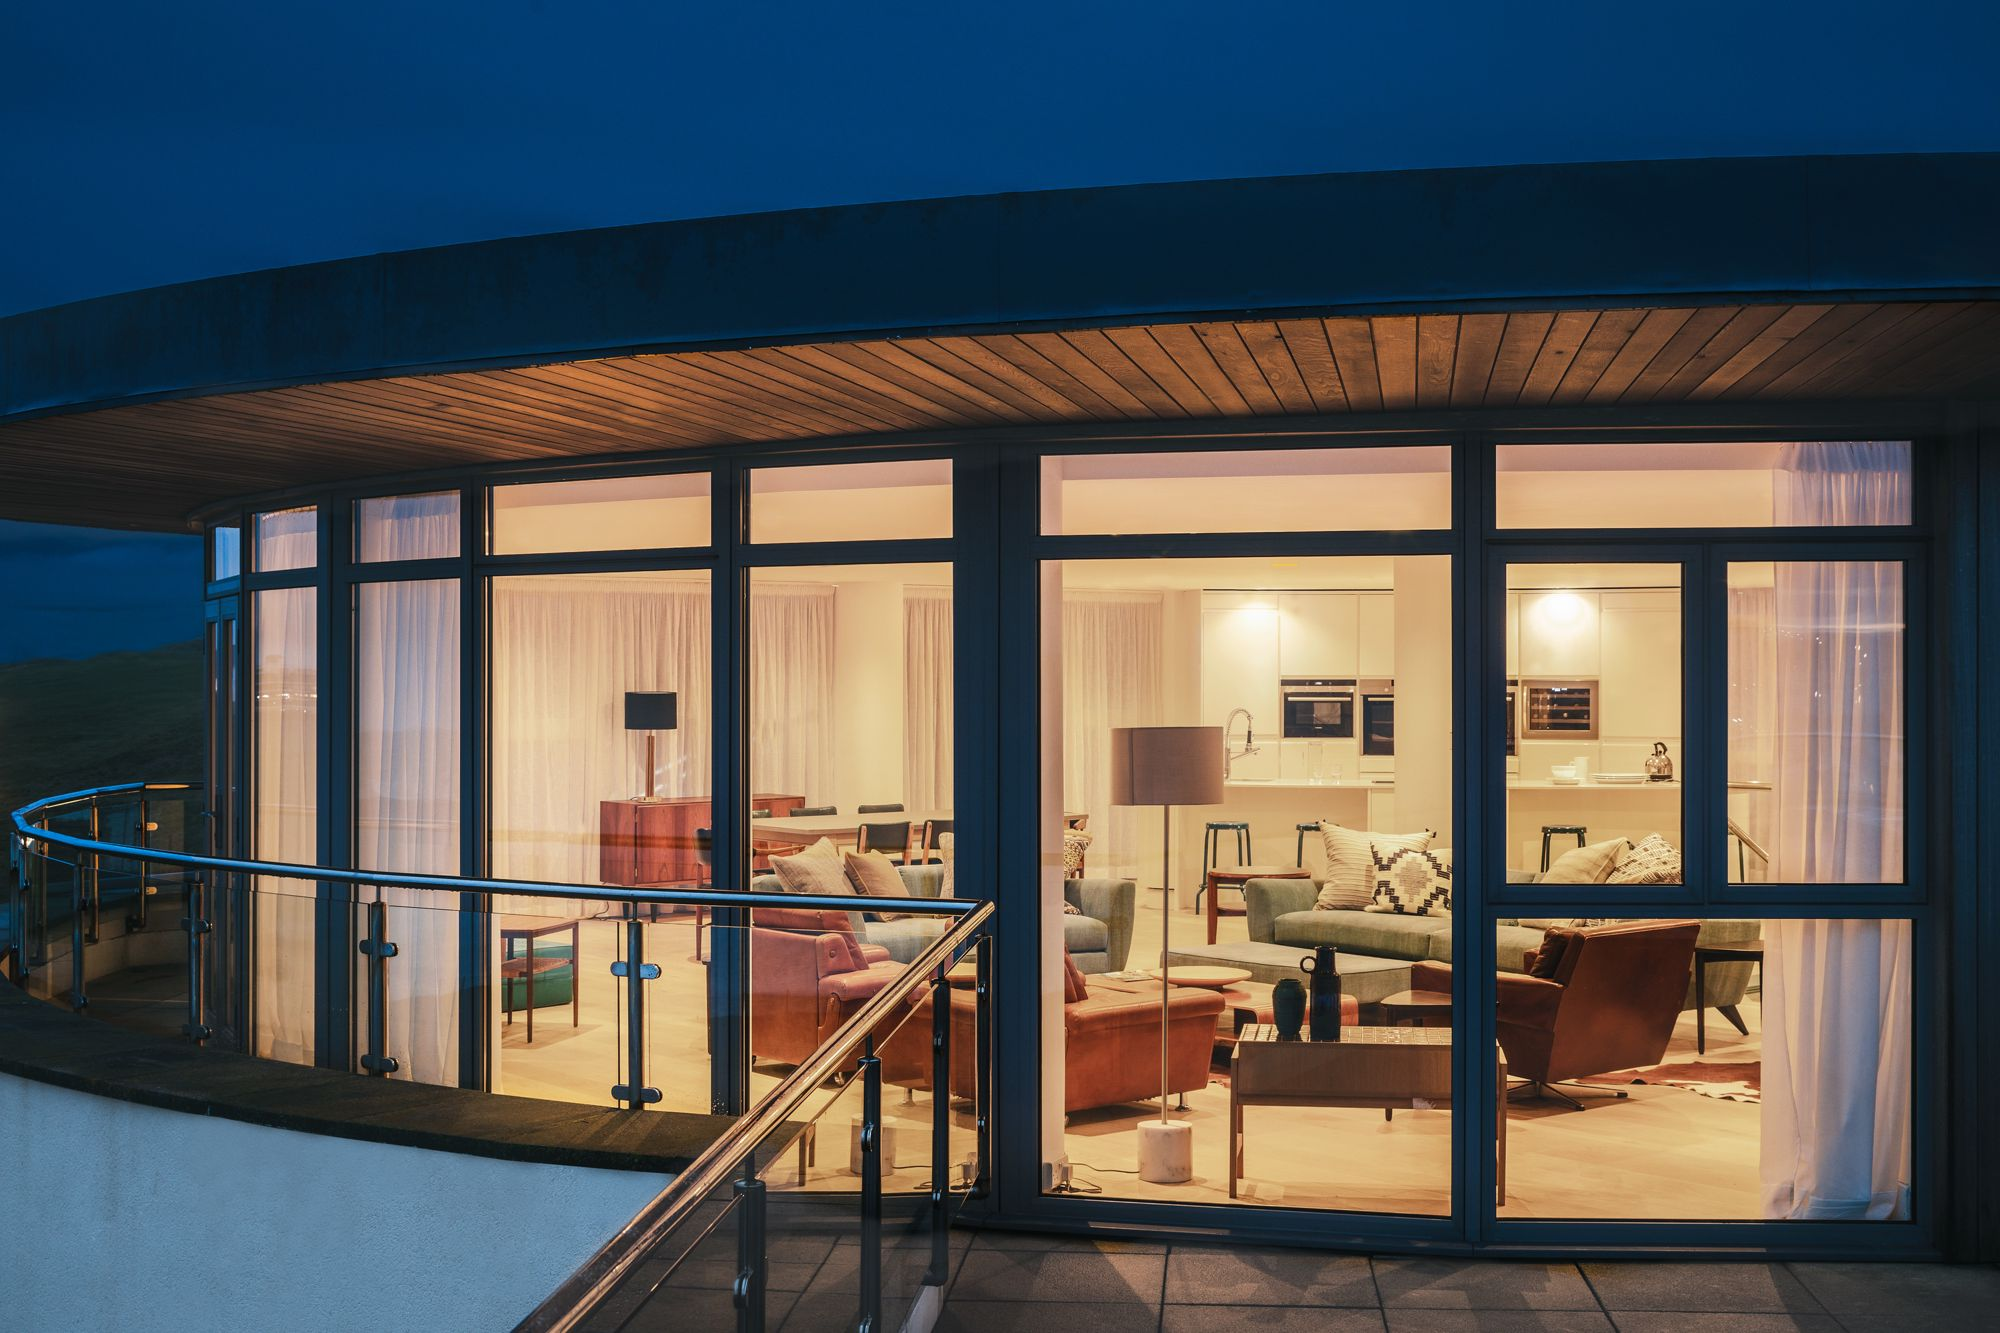 Self-Catering in Cornwall holidays at Cool Places